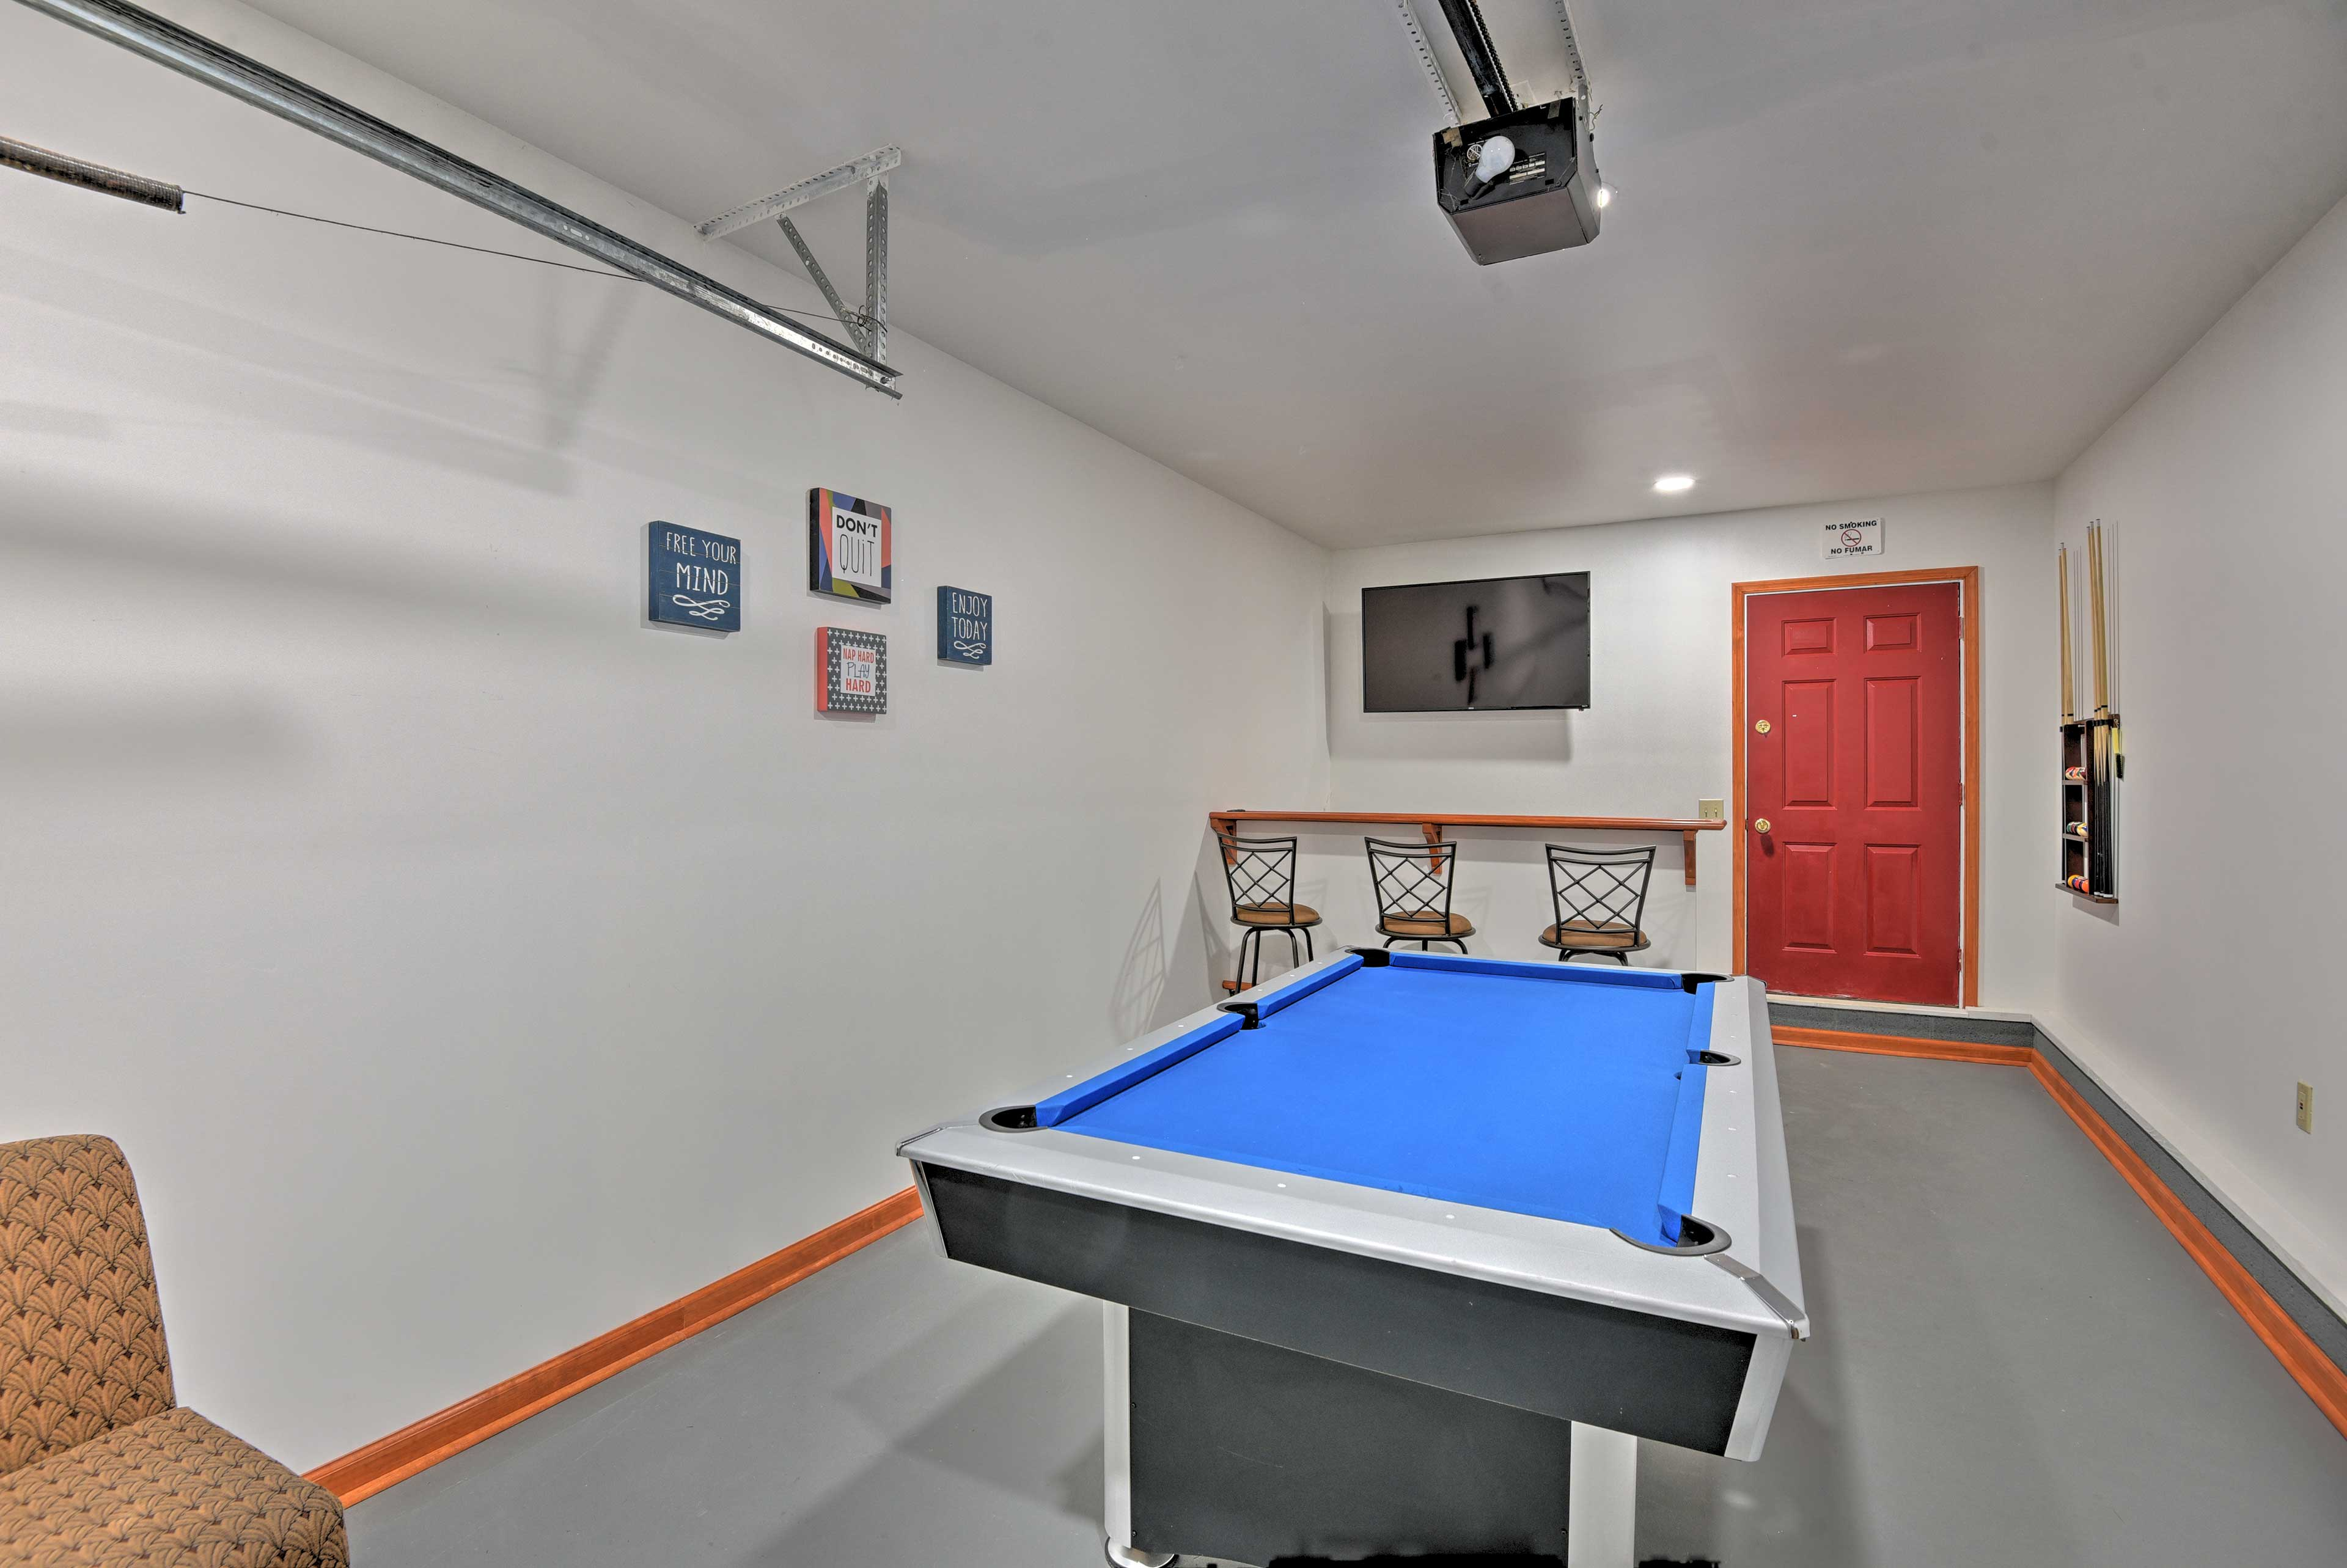 Hang out in the game room, equipped with a pool table and flat-screen TV.